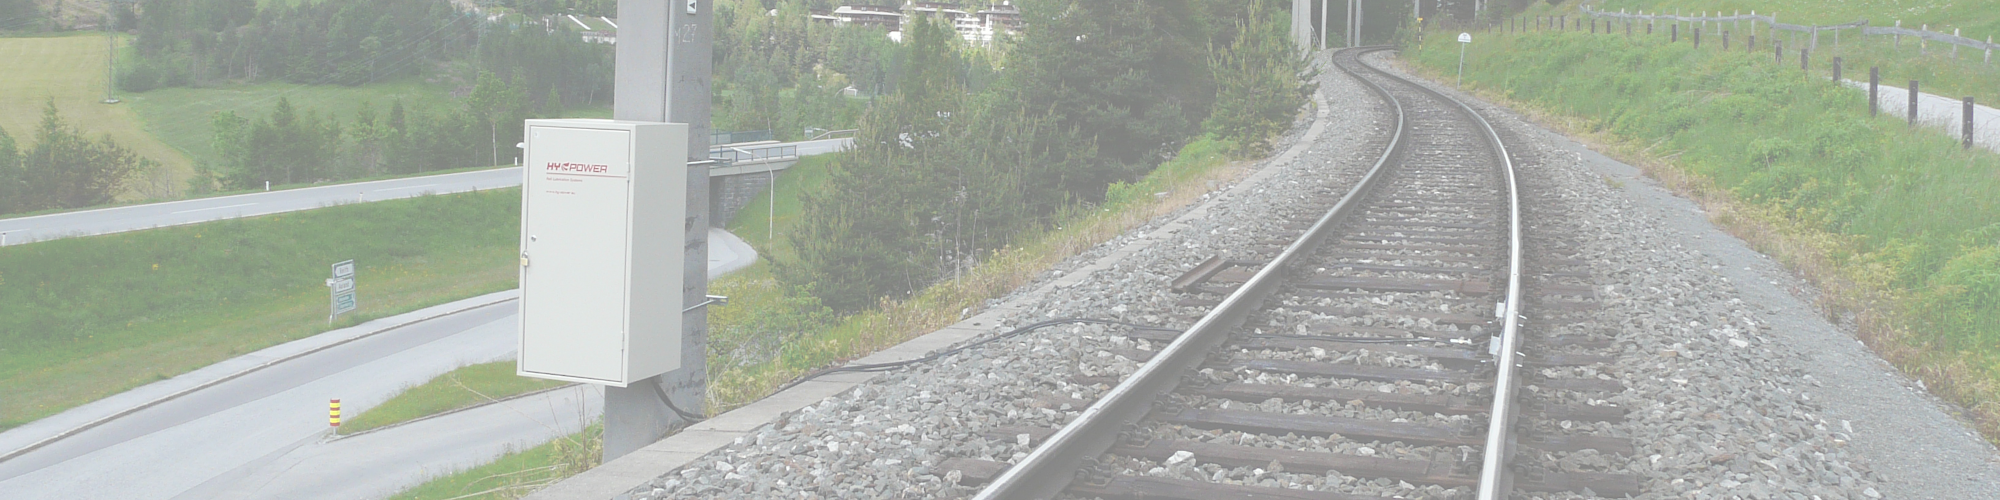 Rail lubrication systems<br>Top of rail care